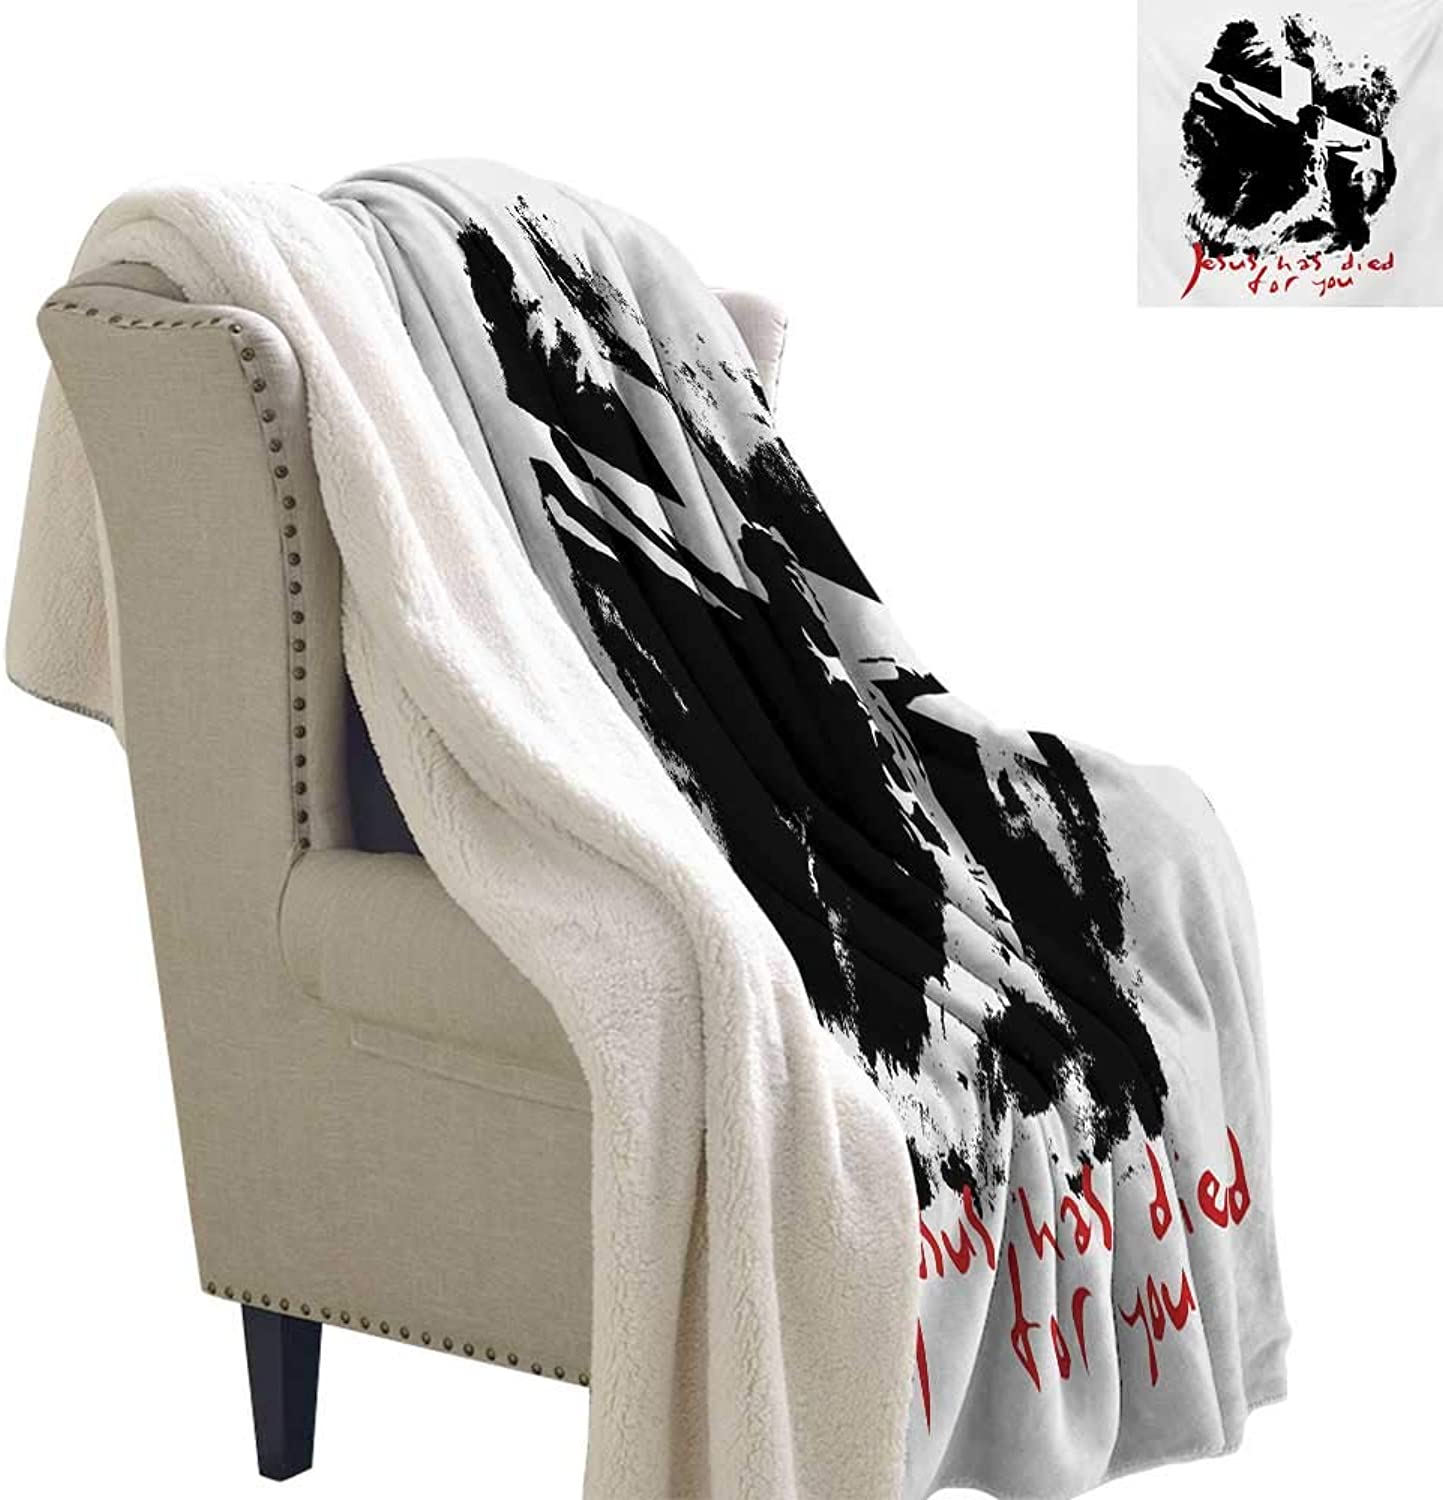 Quote Berber Fleece Blanket 60x47 Inch Grunge Style Image on The Cross Scenery and He Has Died for Your Sins Phrase Warm Breathable Comforter for Girls Kids Adults Black White Red